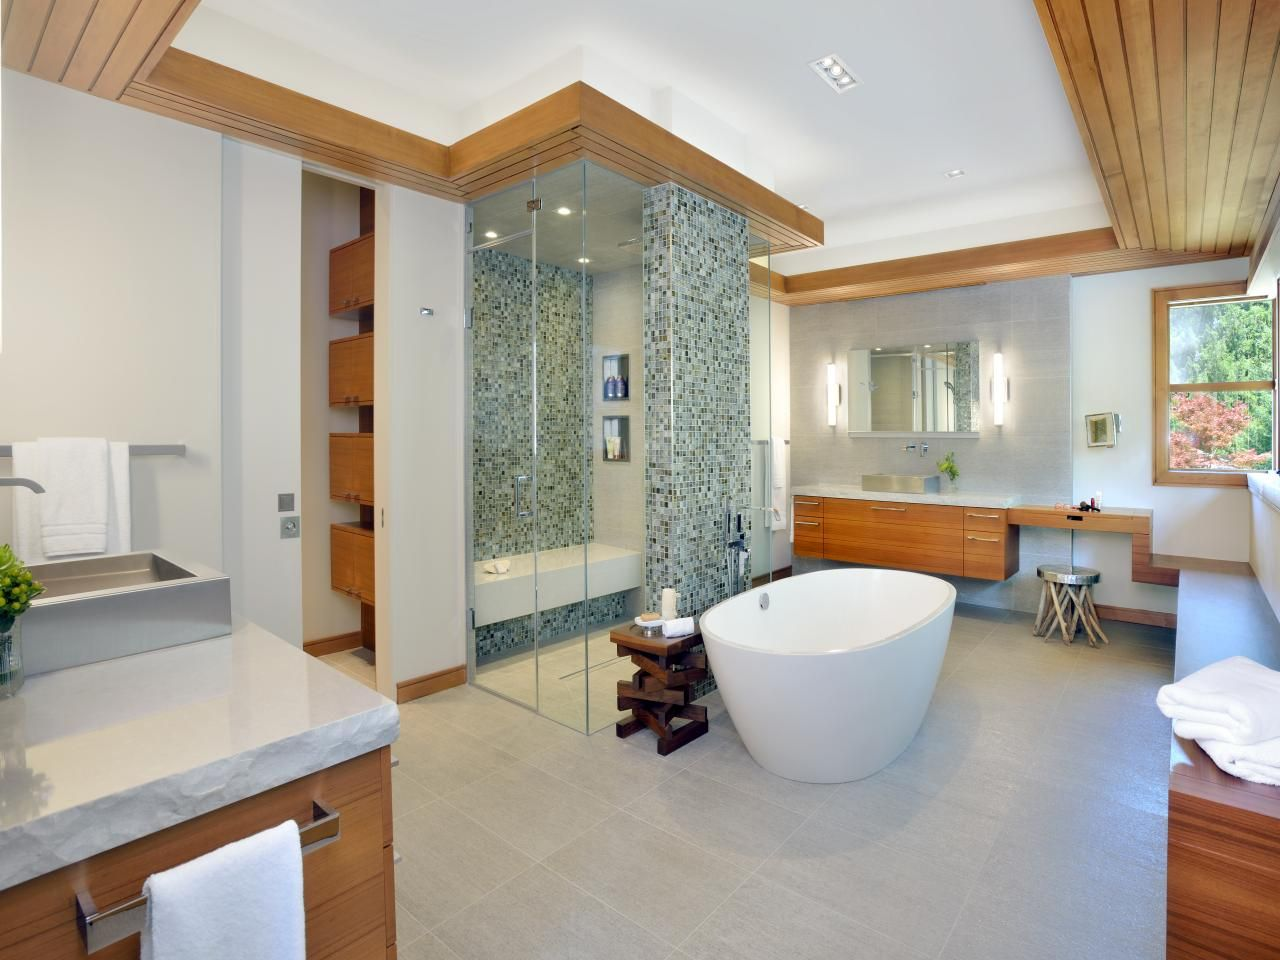 Best Master Bathroom Designs Fair Working From The Architectural Plans For A Yet To Be Constructed Design Ideas